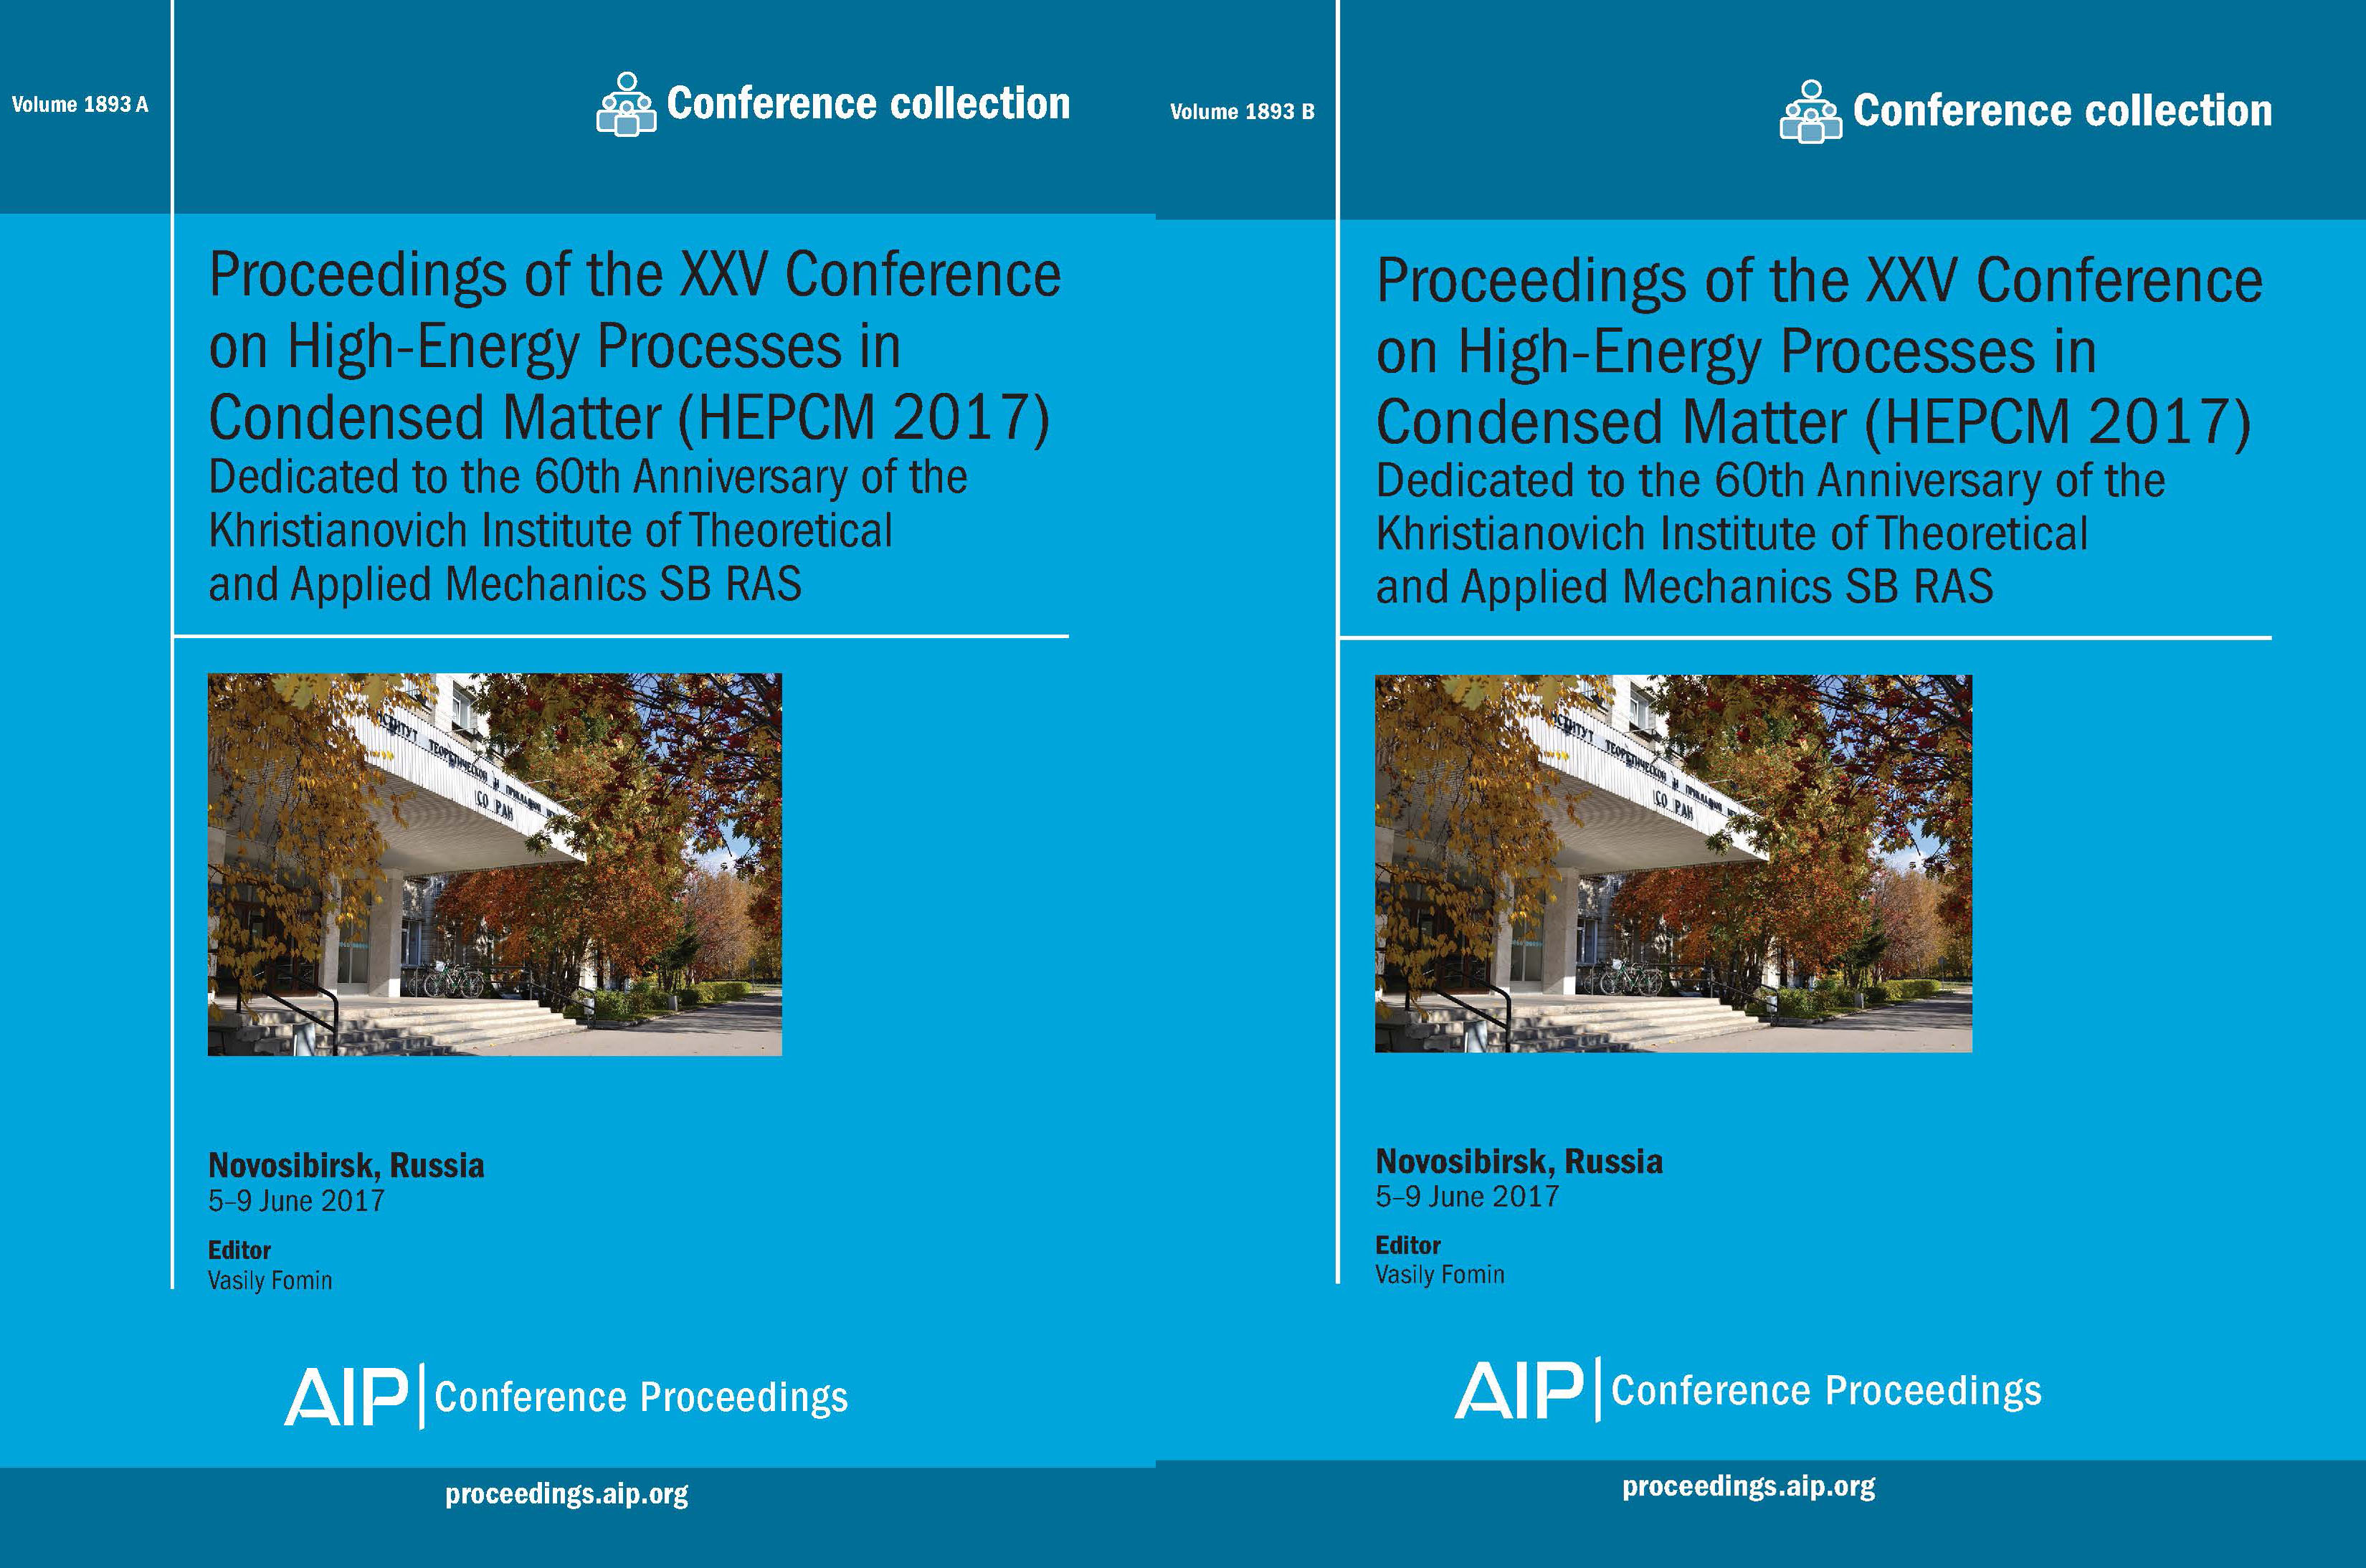 Volume 1893: Proceedings of the XXV Conference on High-Energy